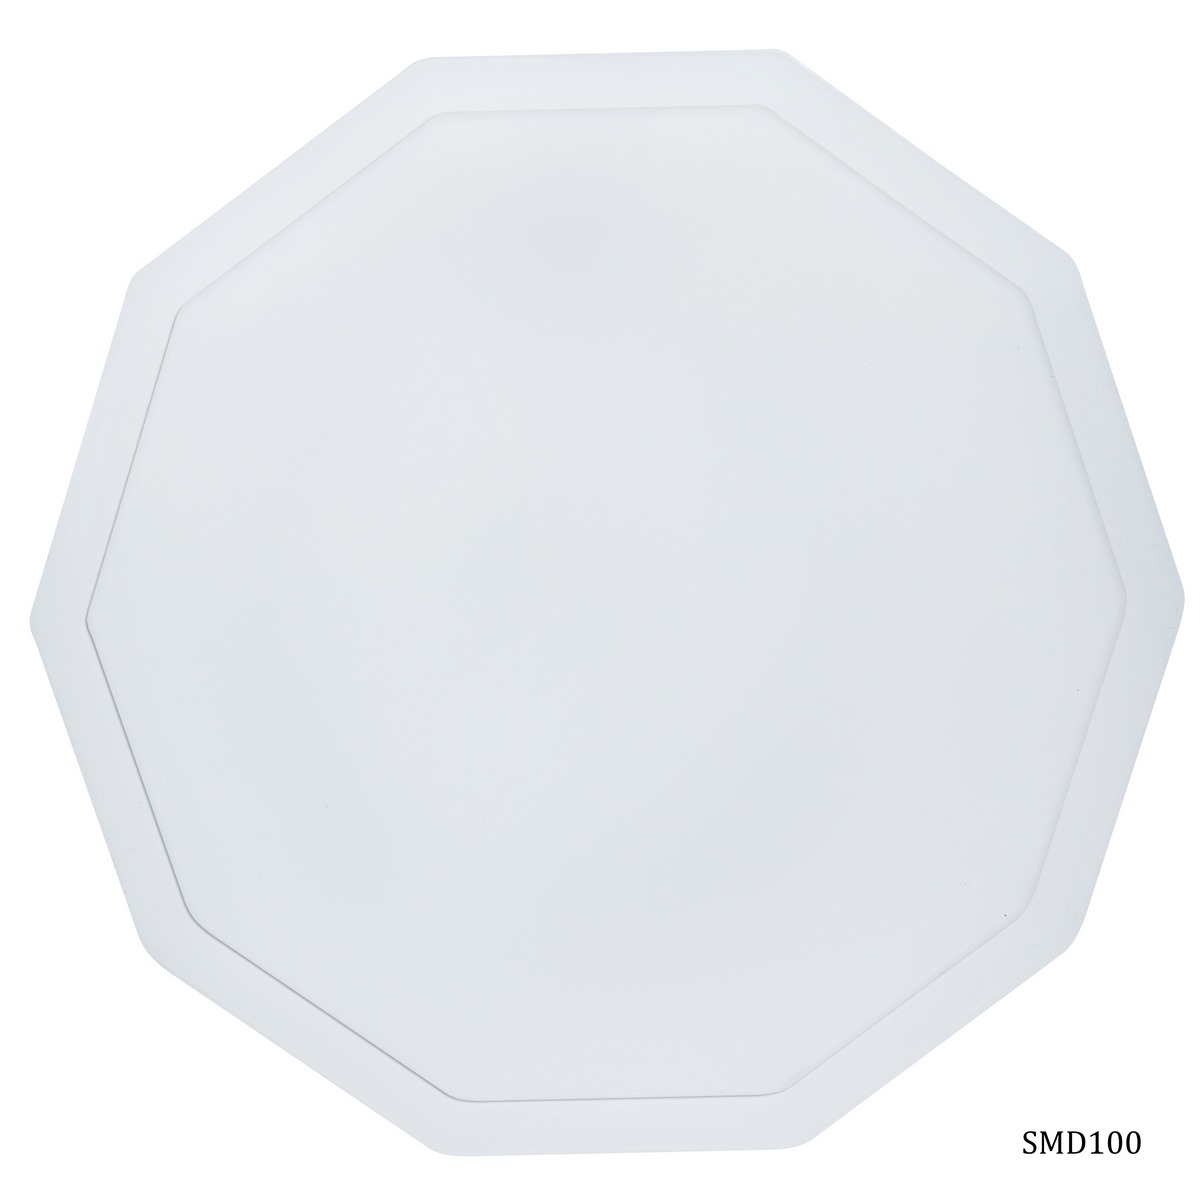 Silicone Mould Decagon 10 Curve Coaster (SMD100)